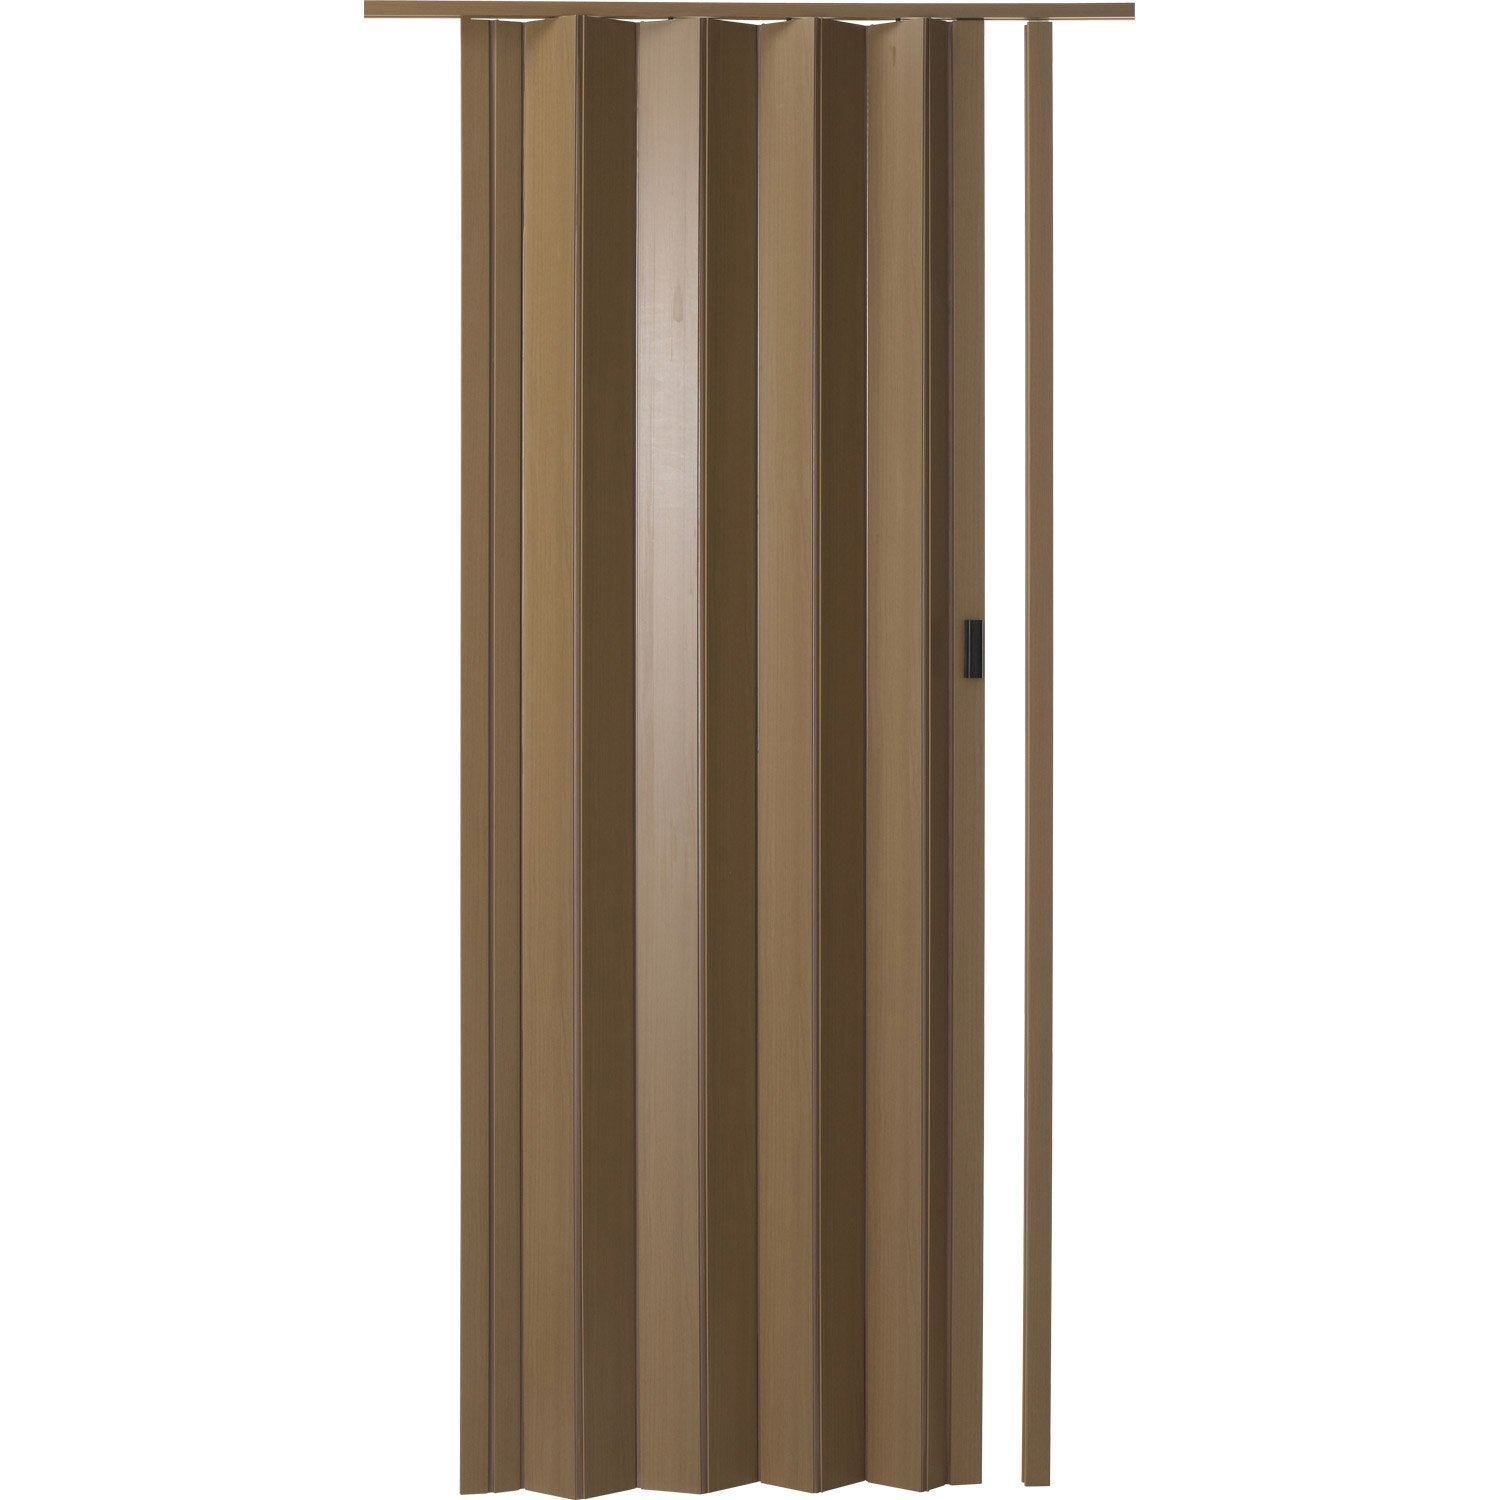 Porte extensible rio noyer 205 x 85 cm pais d 39 une for Porte extensible leroy merlin